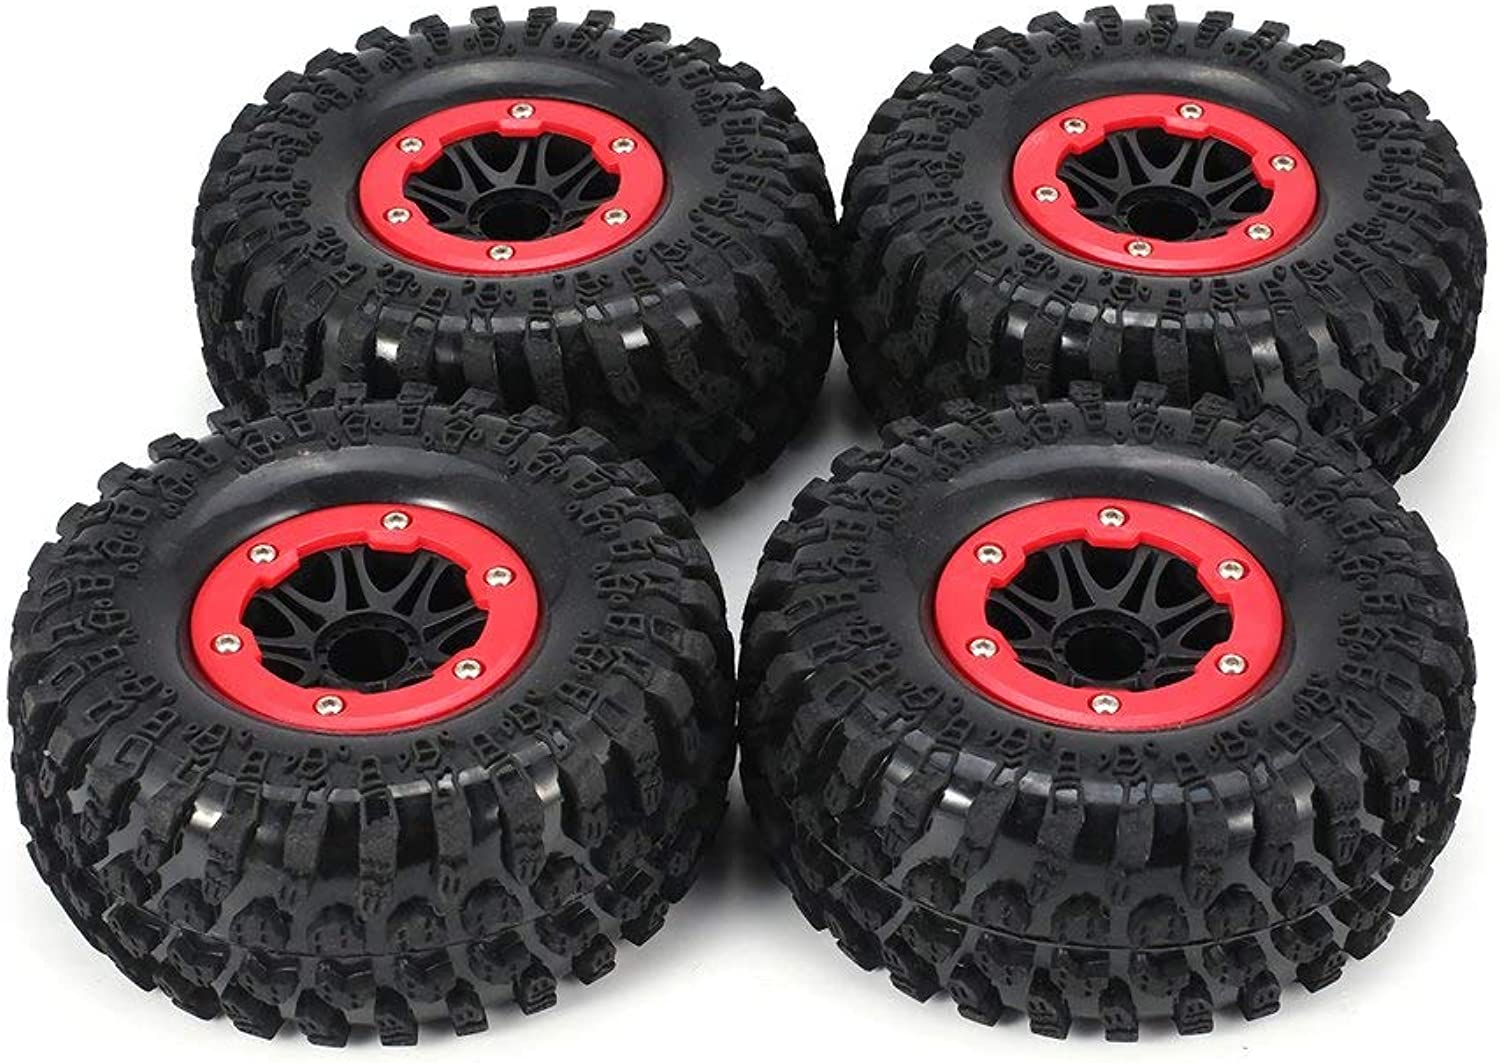 AUSTAR 4pcs AX-3021 123mm Rim Rubber Tyre Tire Wheel Plastic Hub for 1 10 RC Crawler Model HSP HPI Spare Parts Accessories